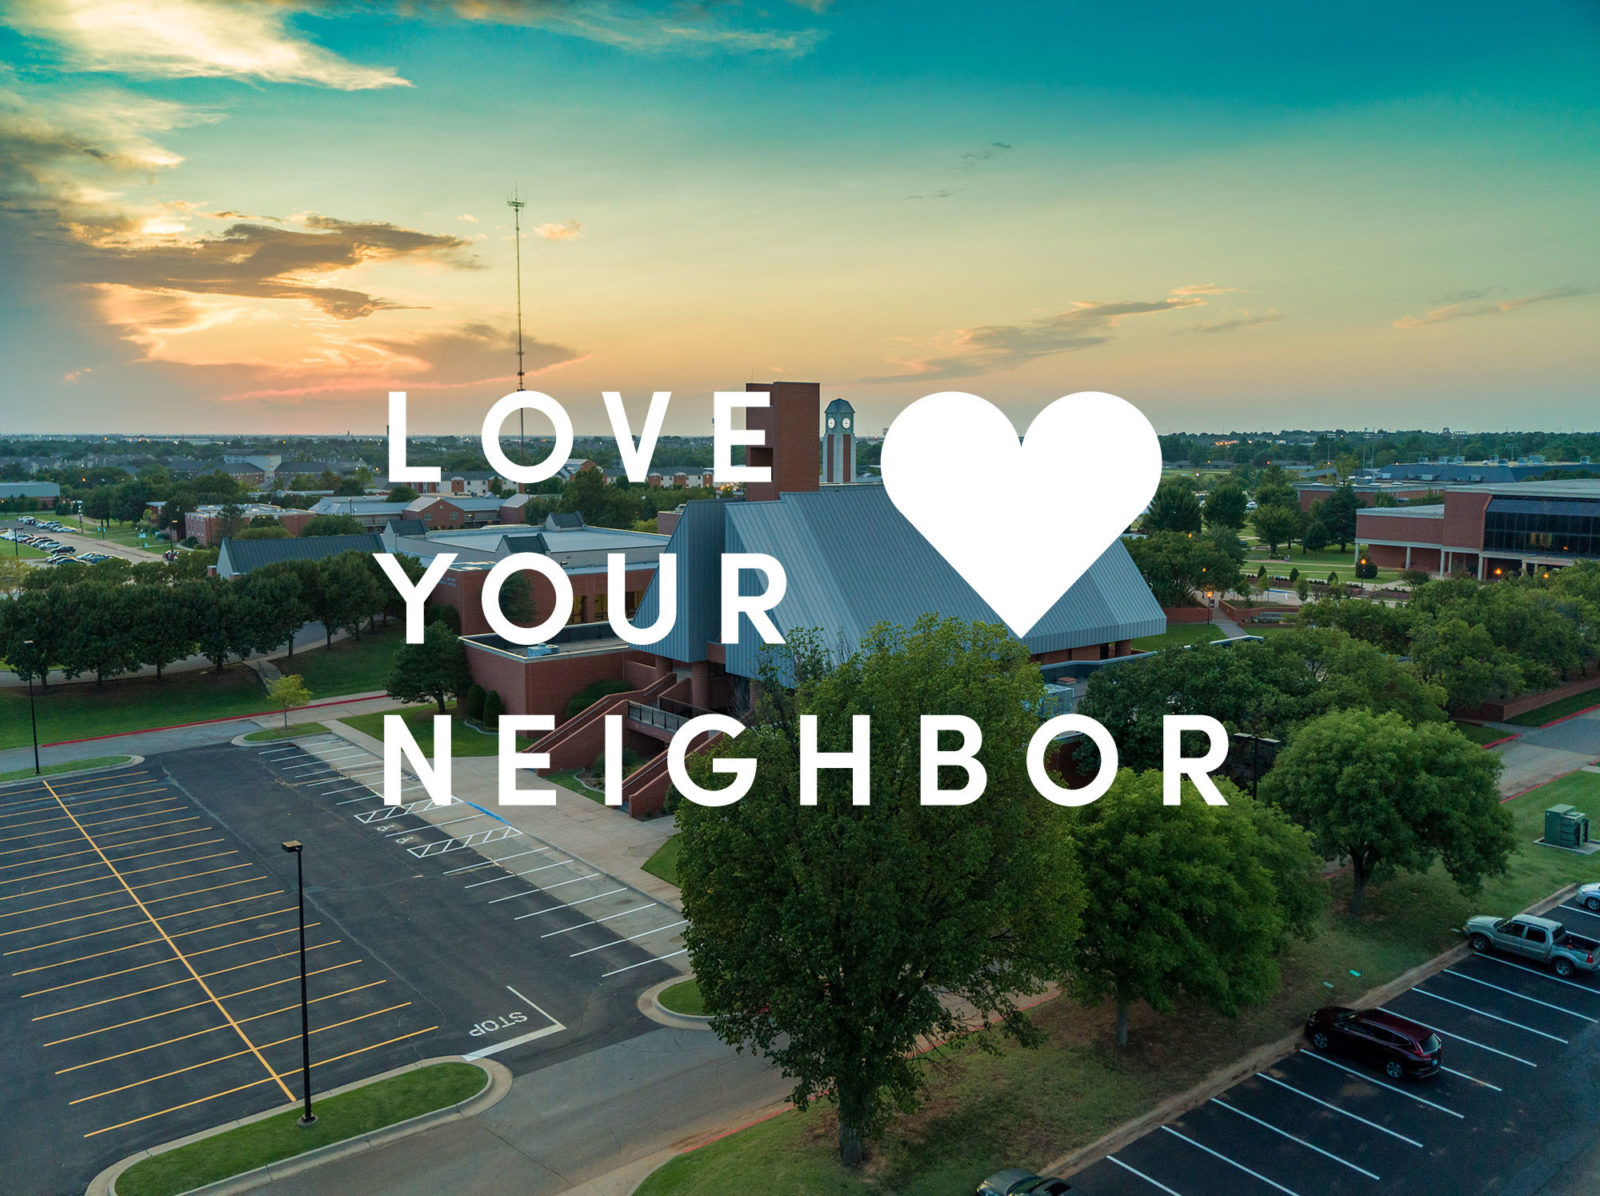 drone shot of campus with Love your neighbor  text